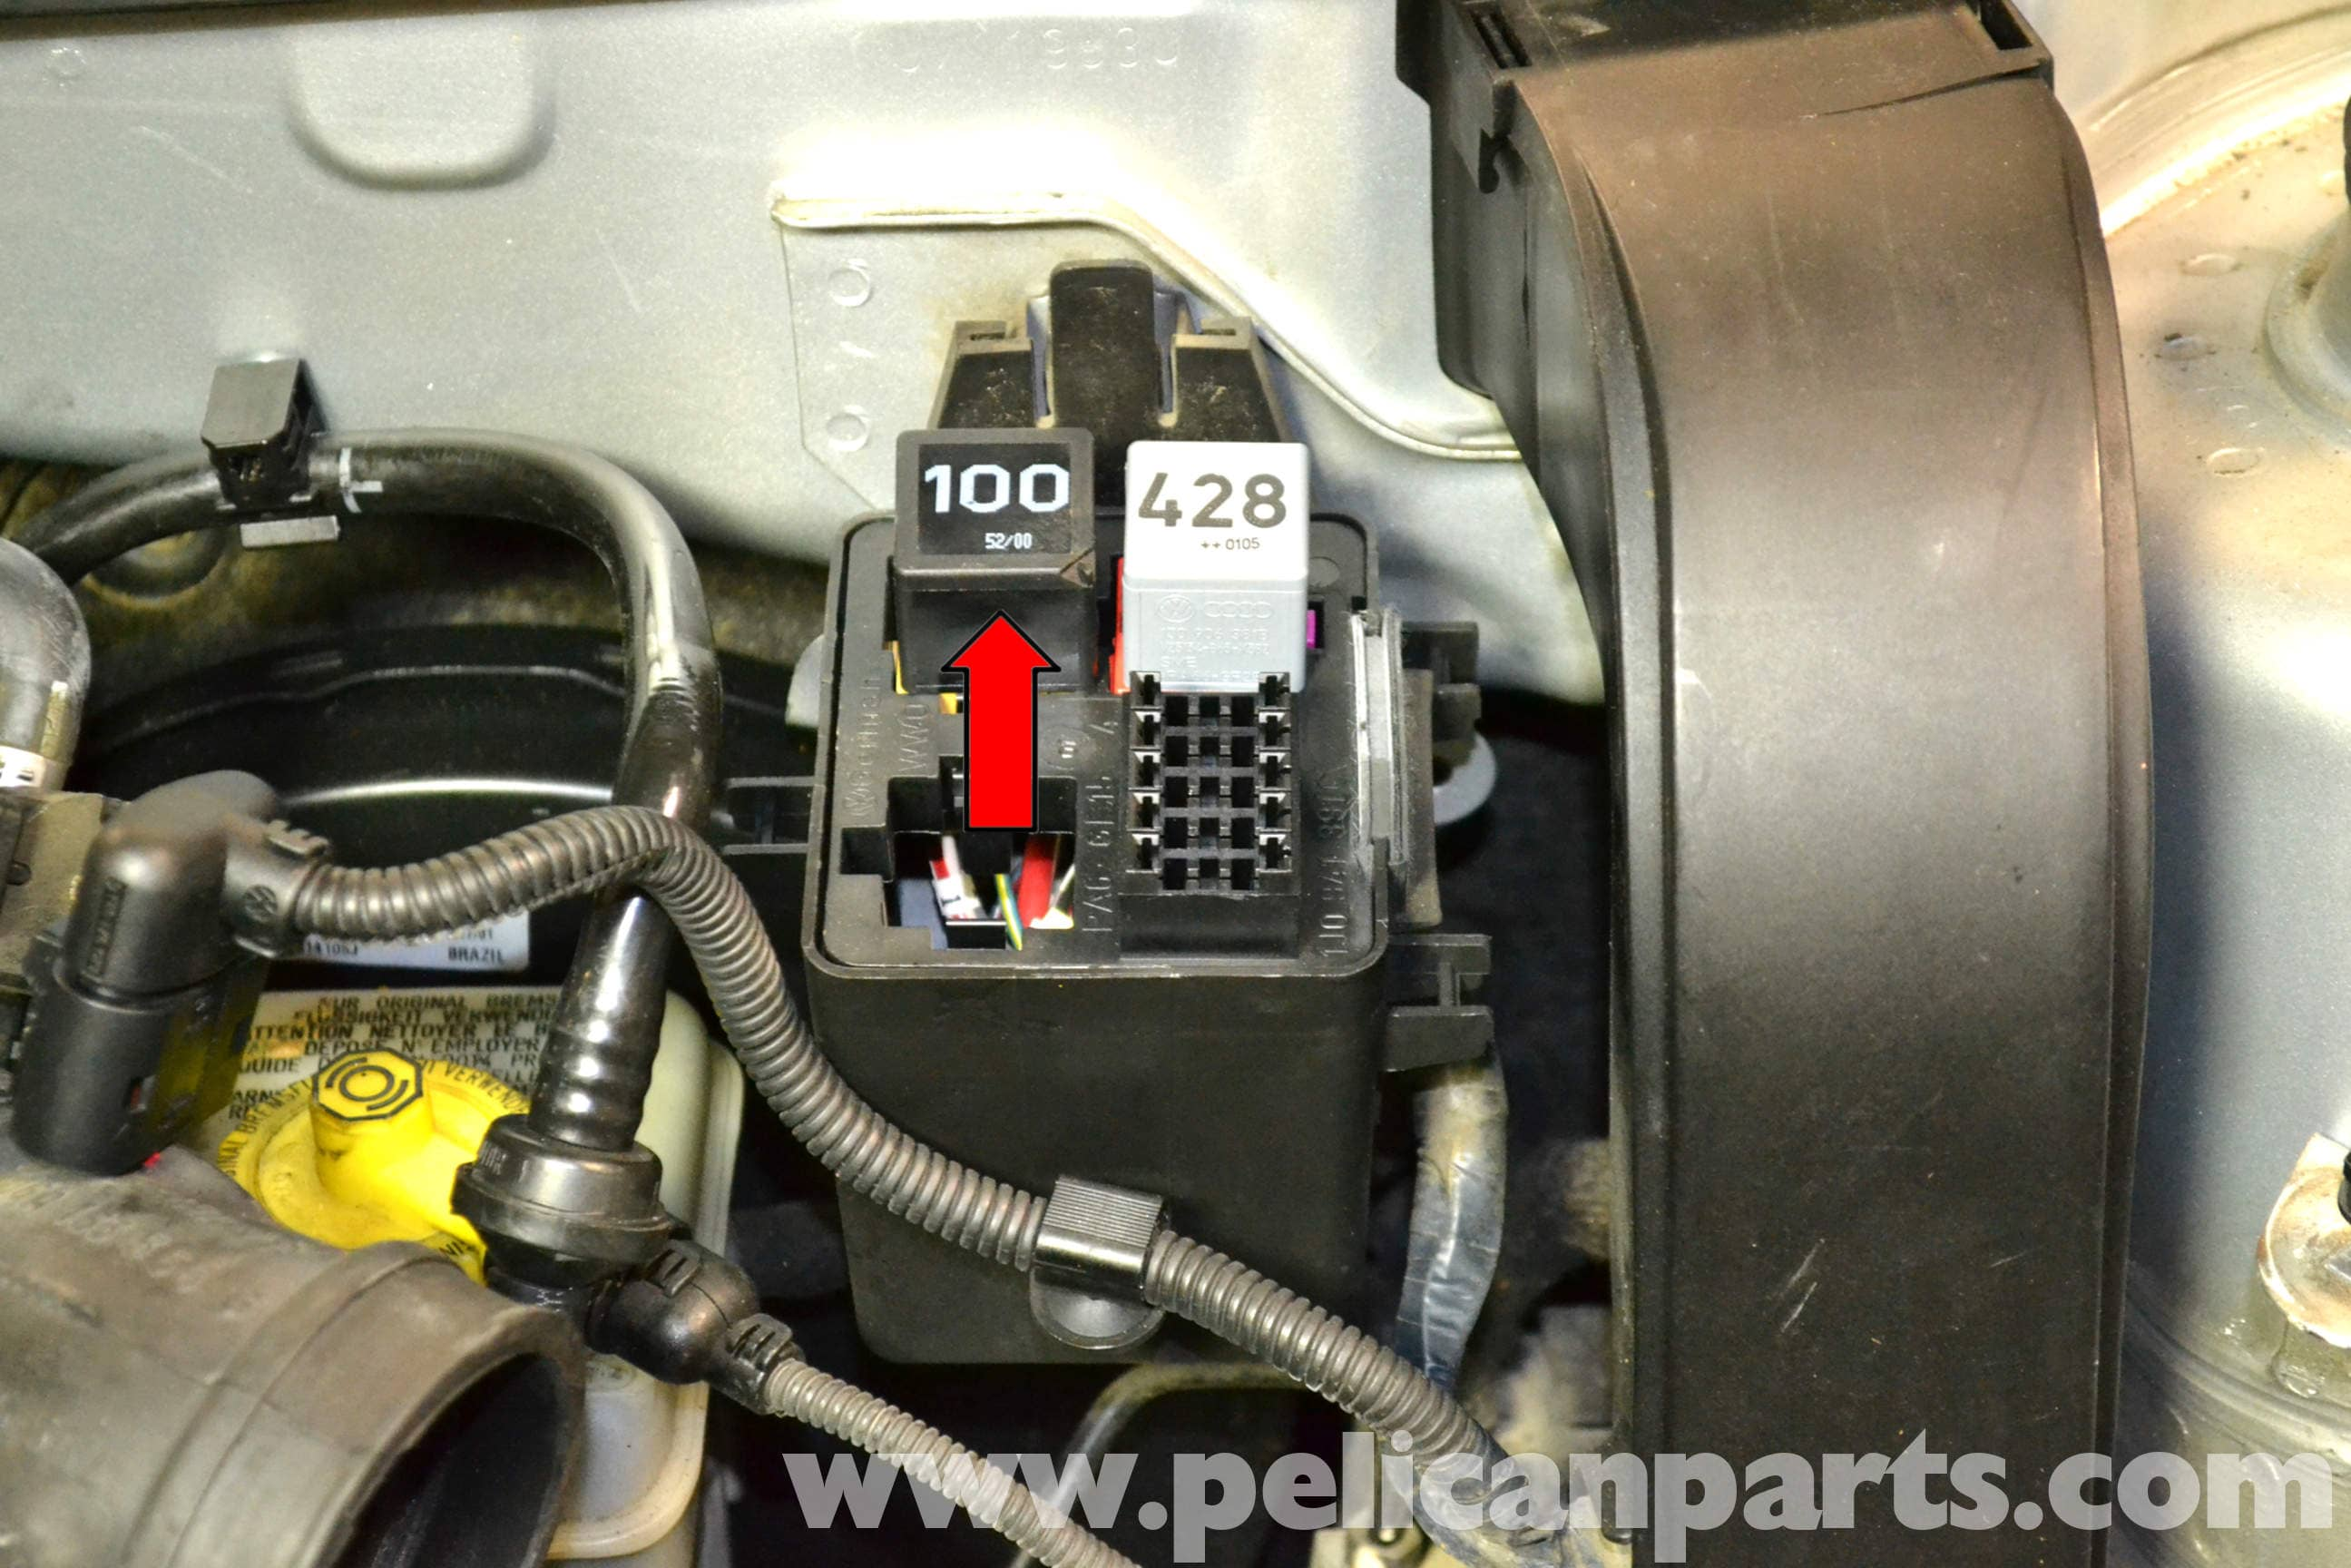 2001 Ford Escape Fuse Box Custom Project Wiring Diagram Location Volkswagen Golf Gti Mk Iv Auxiliary Air Pump And Hose